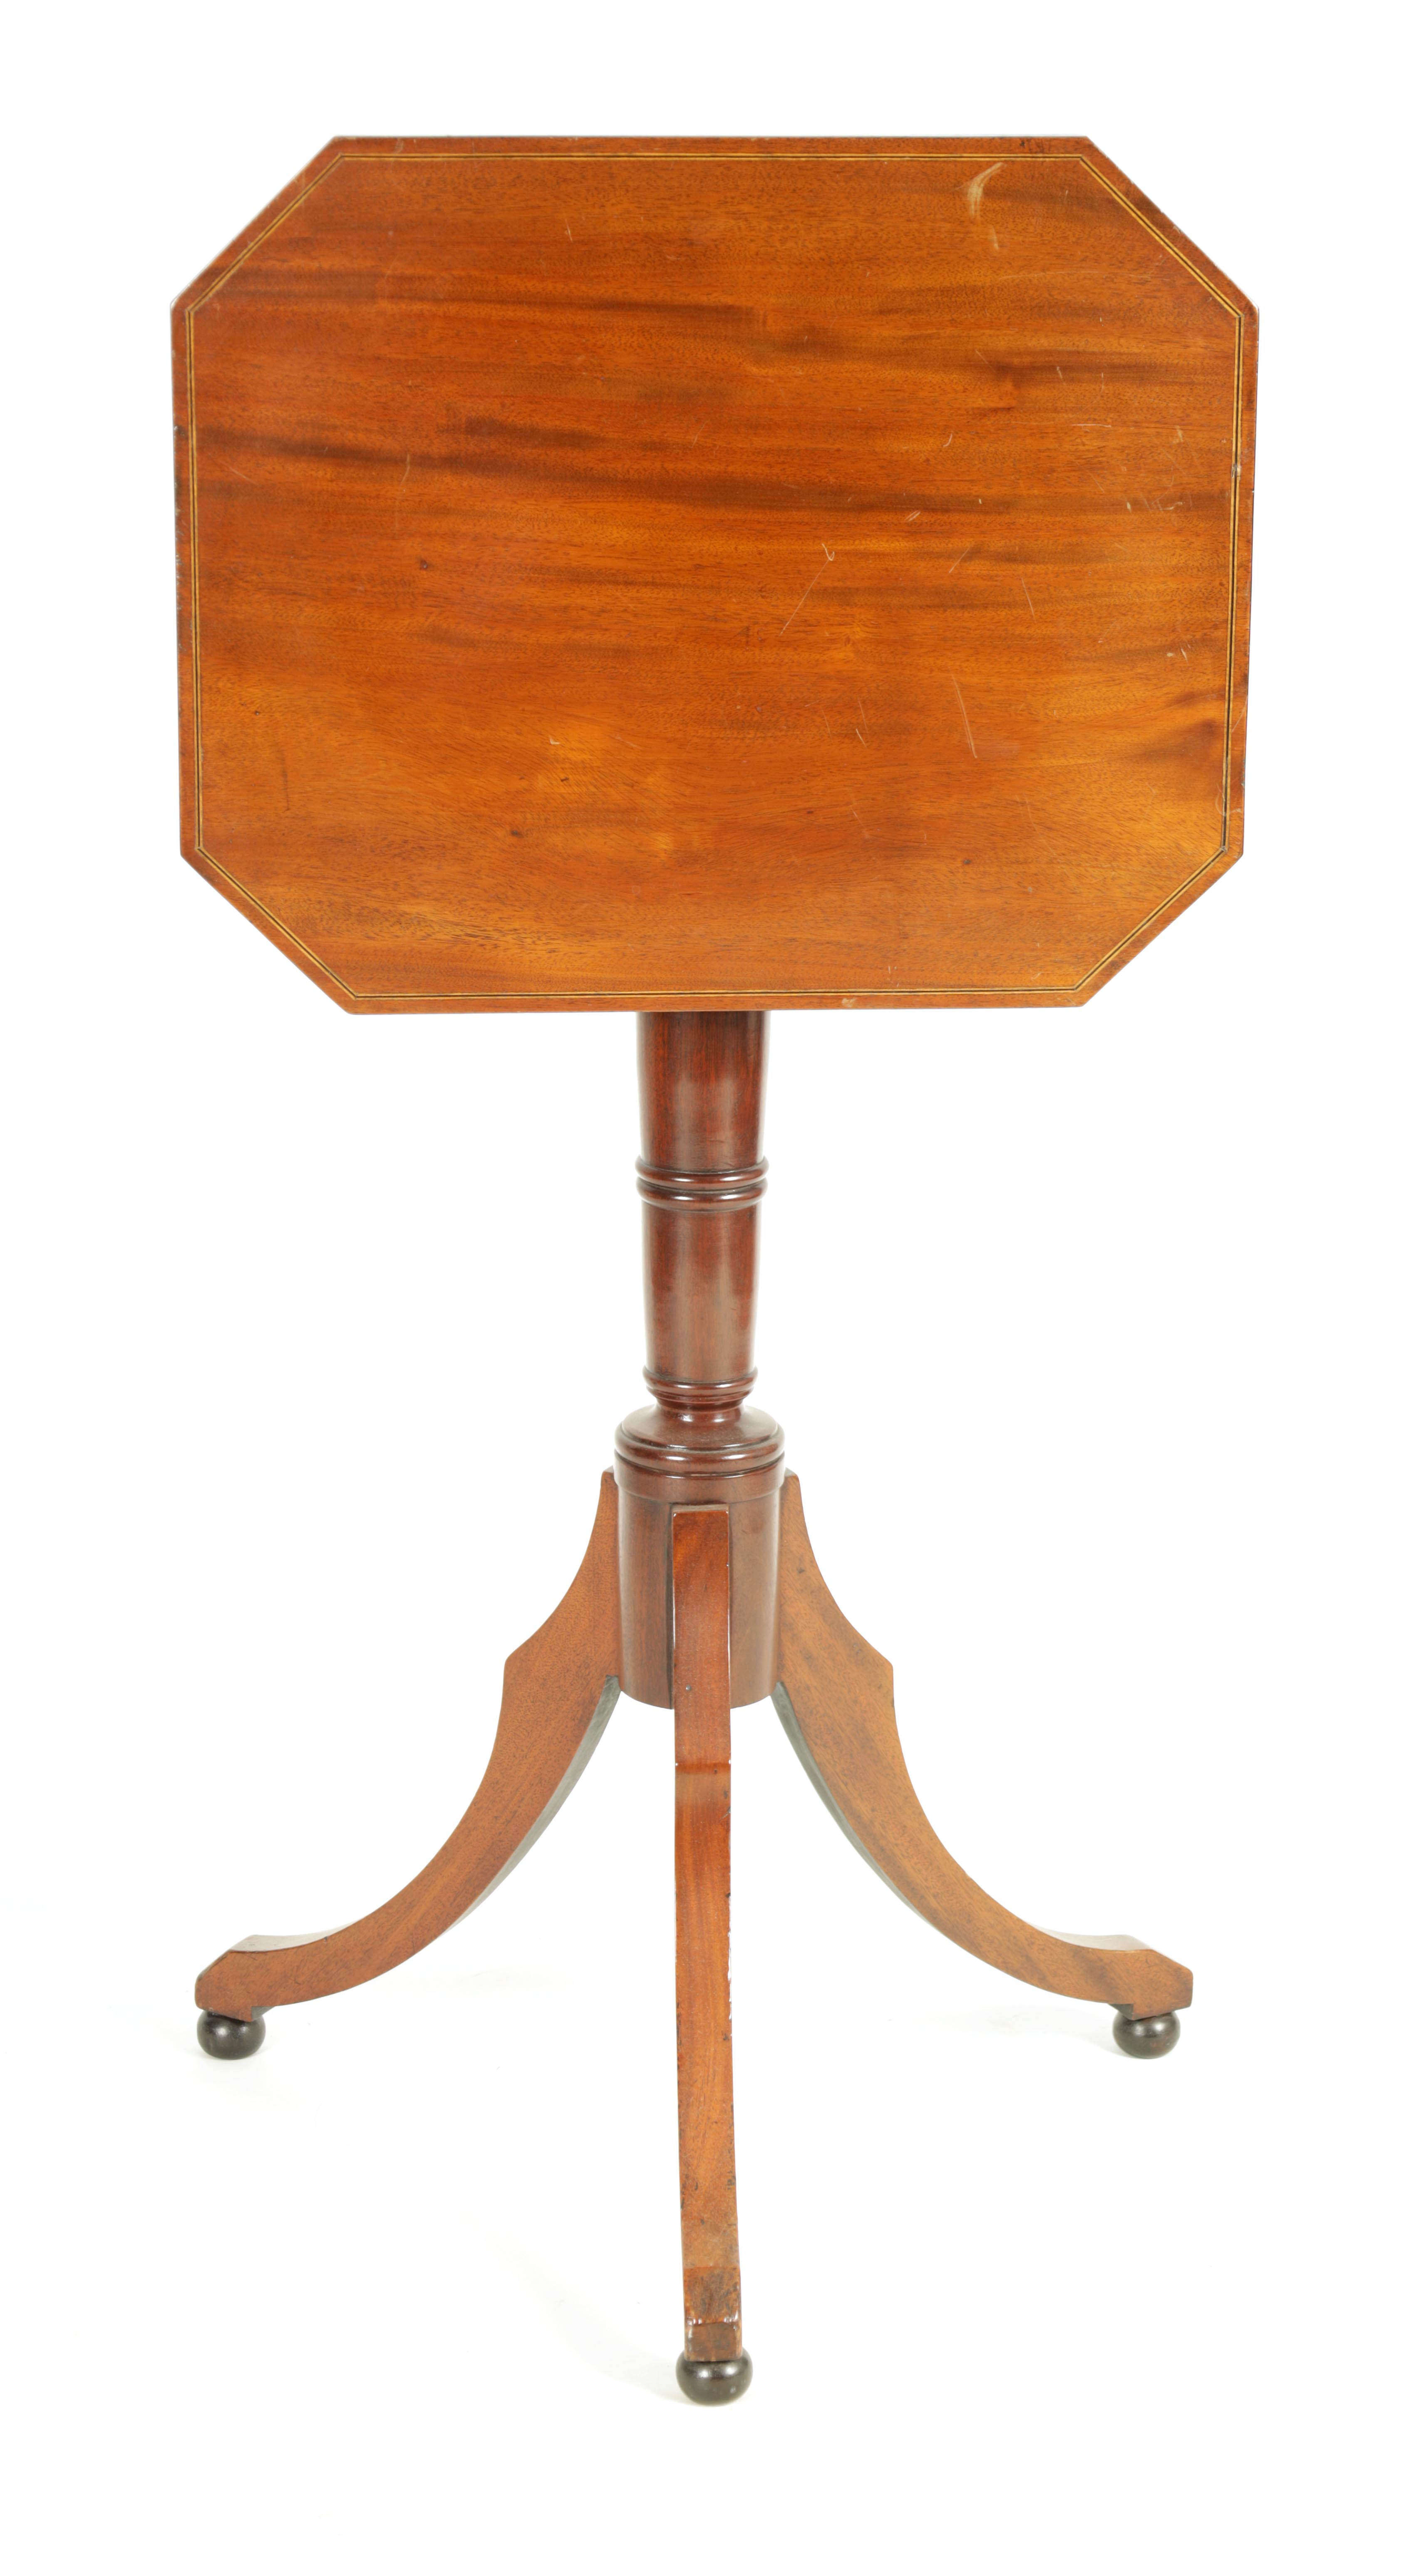 A REGENCY MAHOGANY ADJUSTABLE OCCASIONAL/READING TABLE with clipped corners and tilting top,